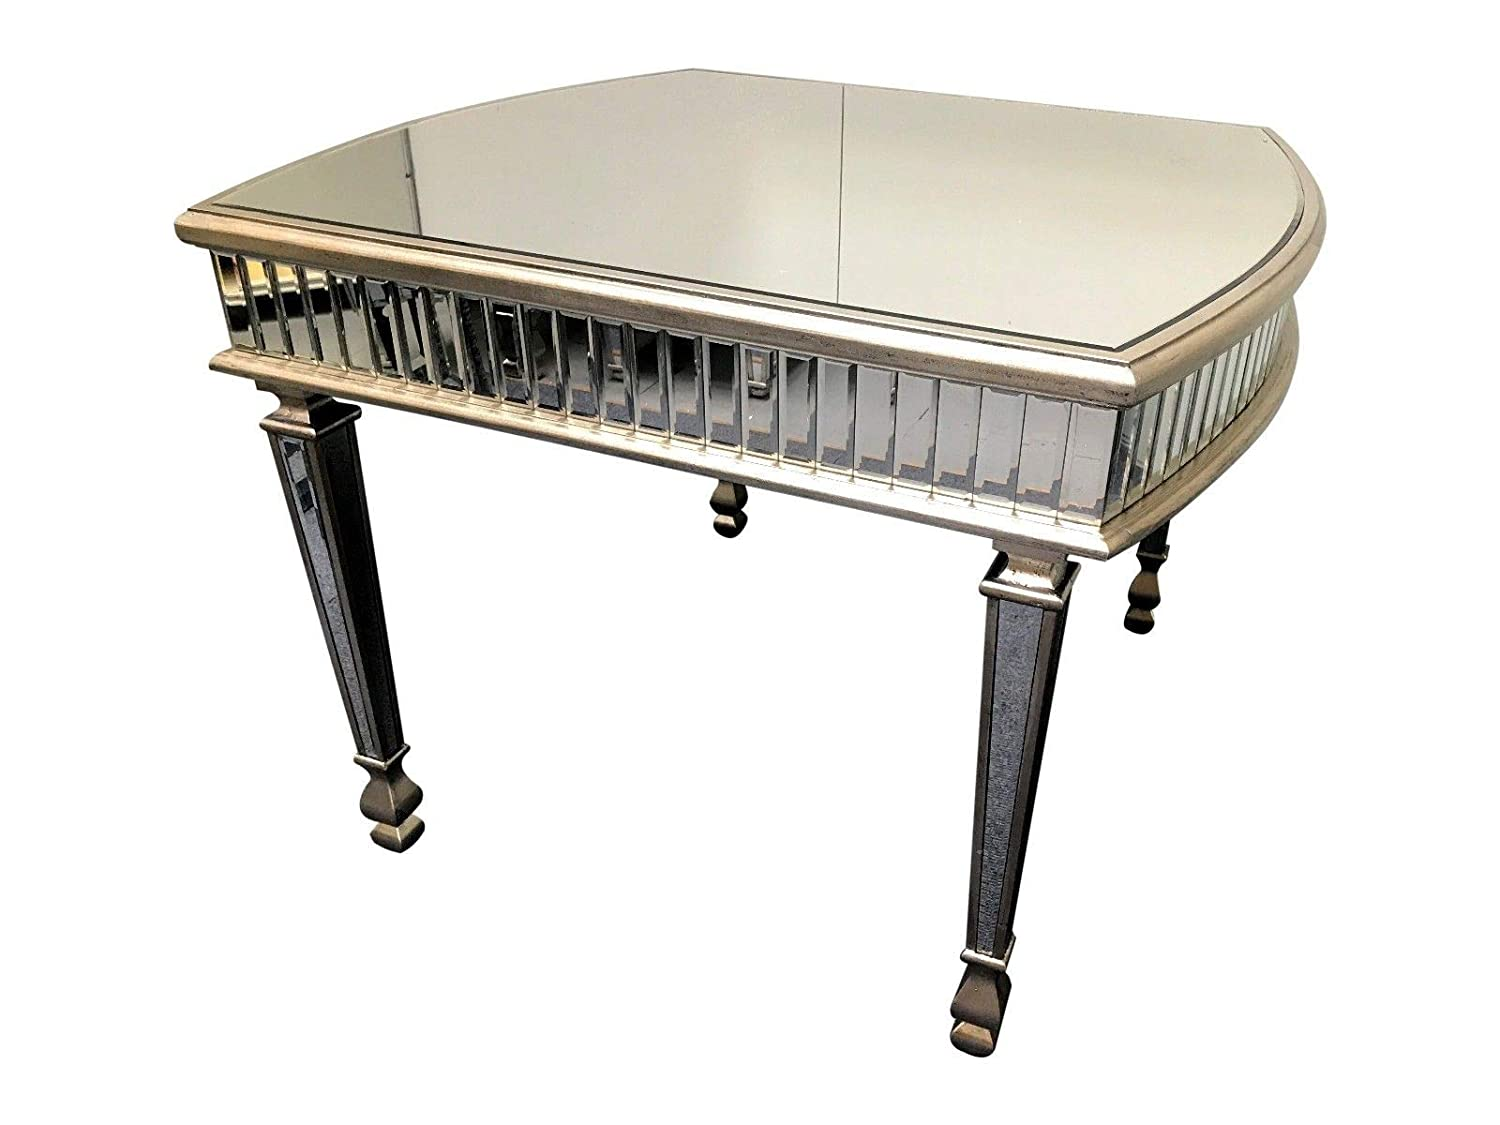 Interiors In Vogue Oval Mirrored Coffee Table Venetian Glass Living Room Furniture With Silver Edging